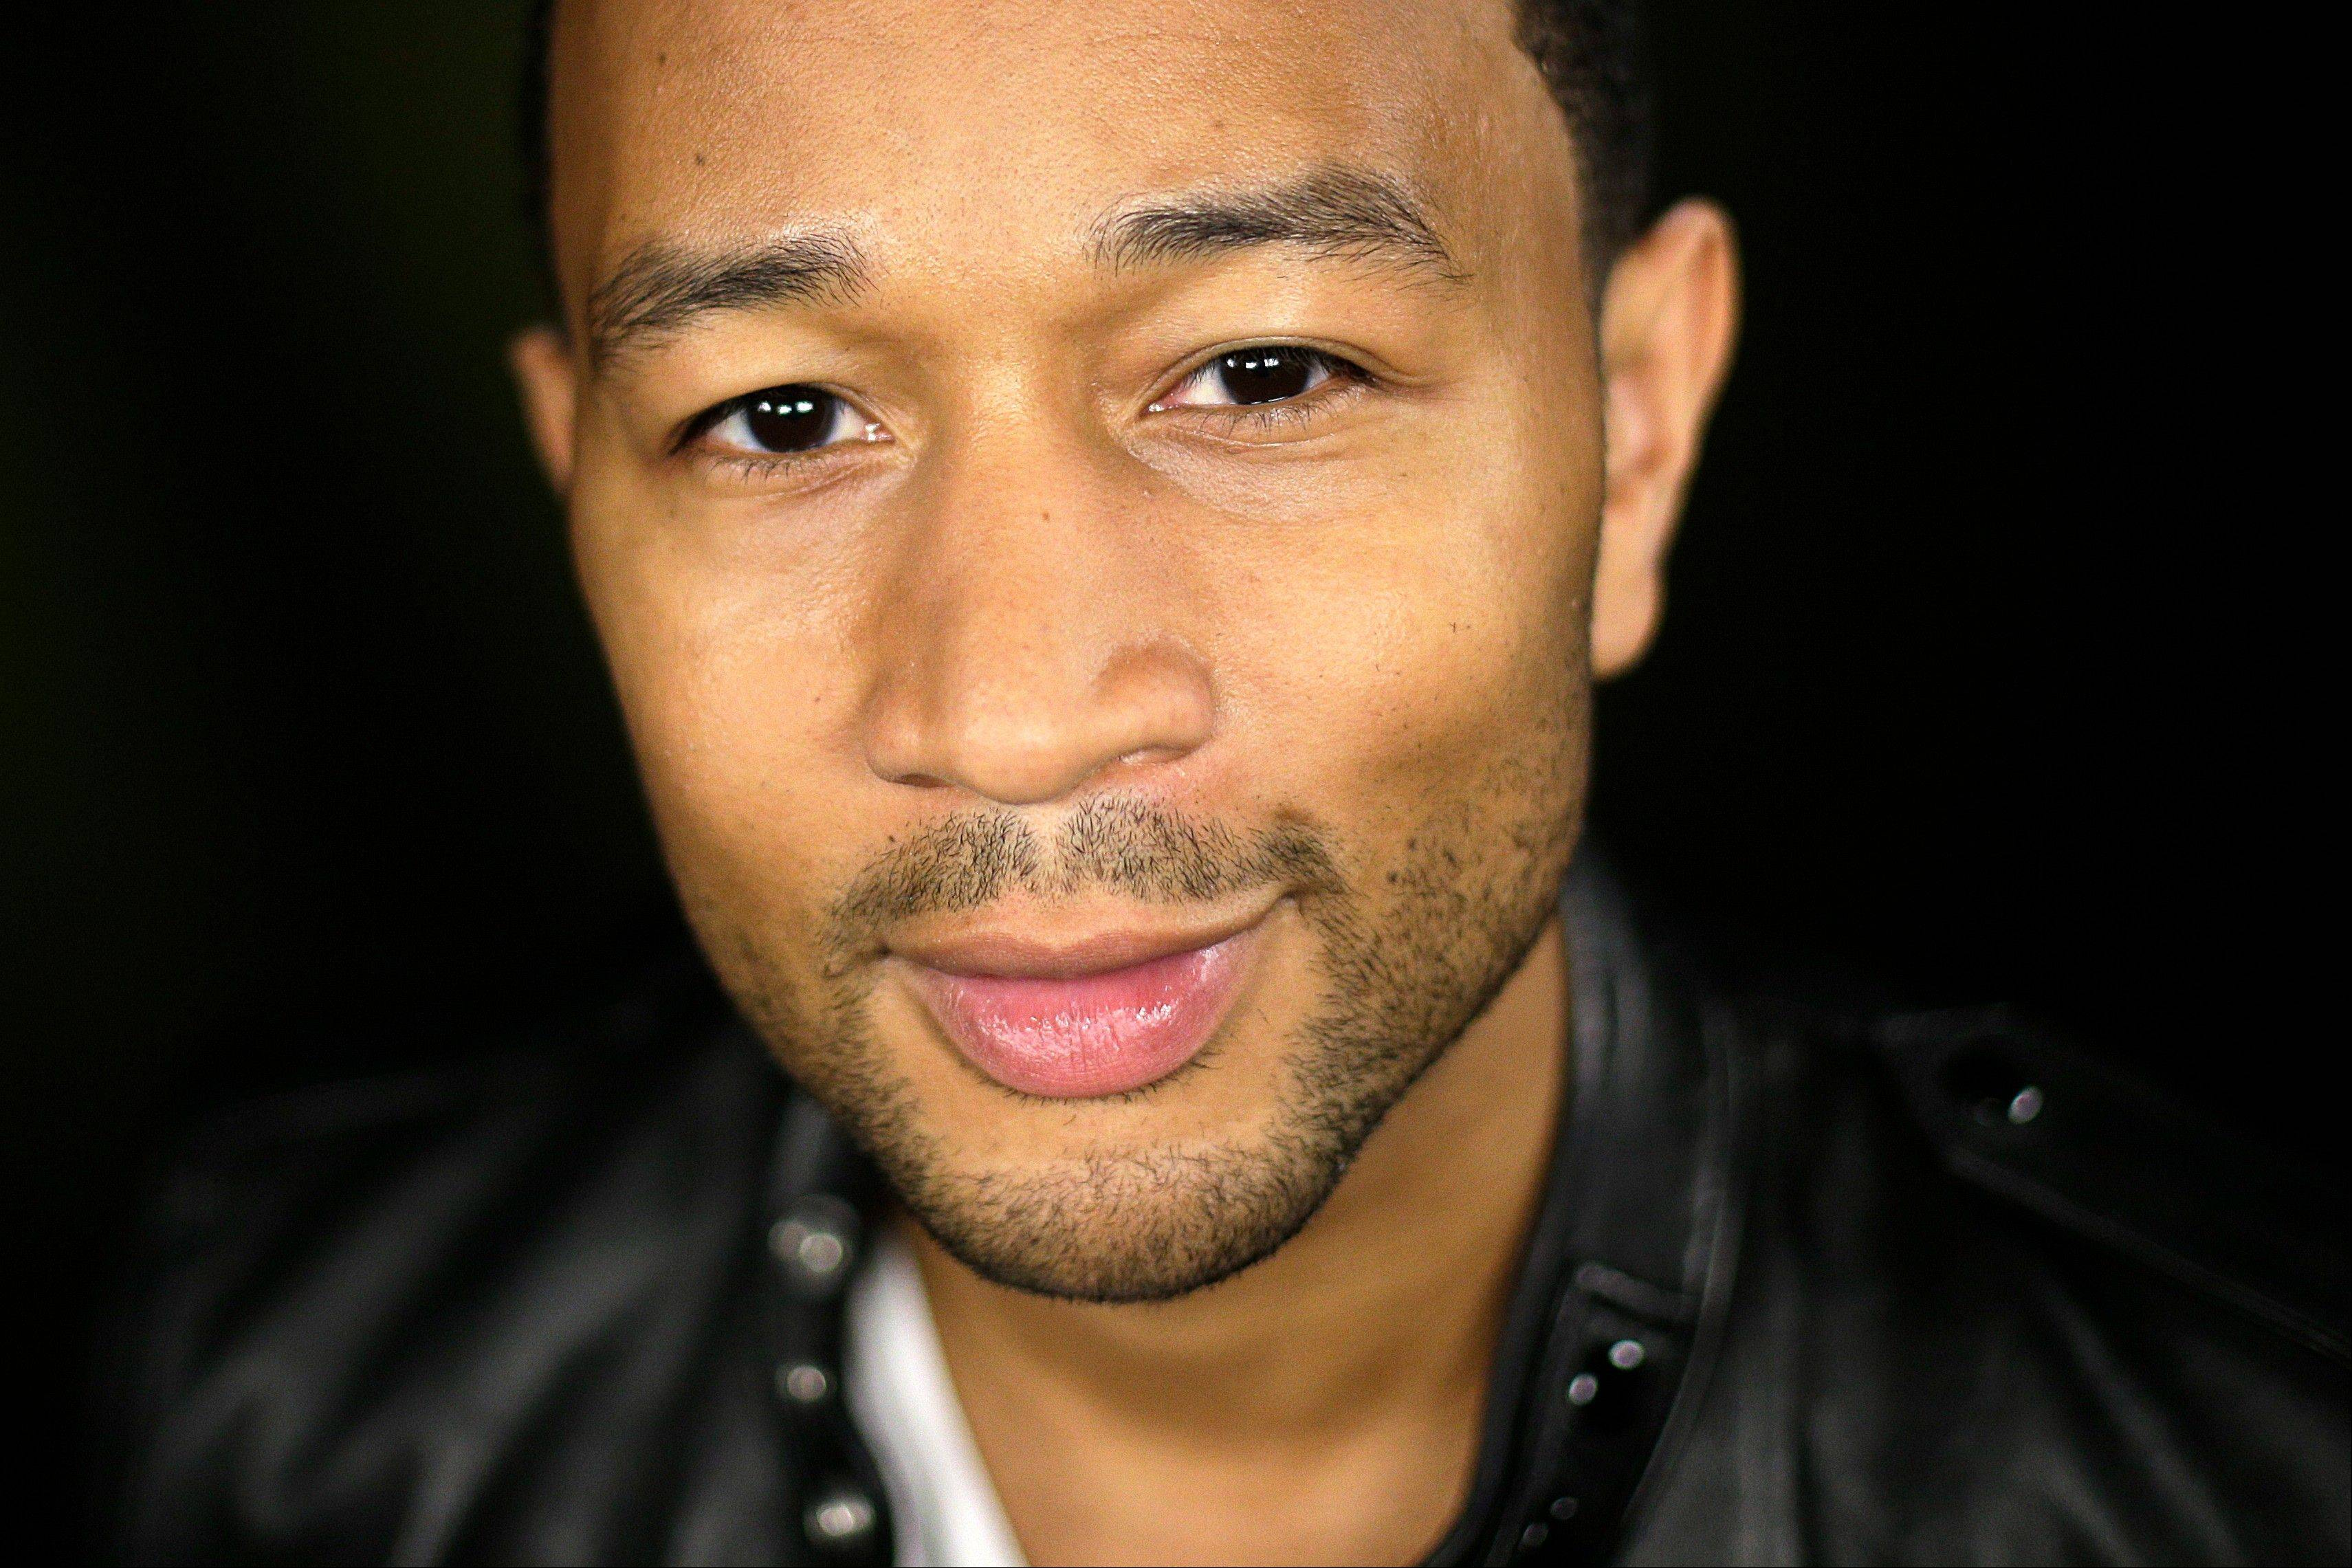 Singer John Legend's fourth album went on sale earlier this month. He hits the road in October for a tour that will bring him to Chicago on Nov. 20.